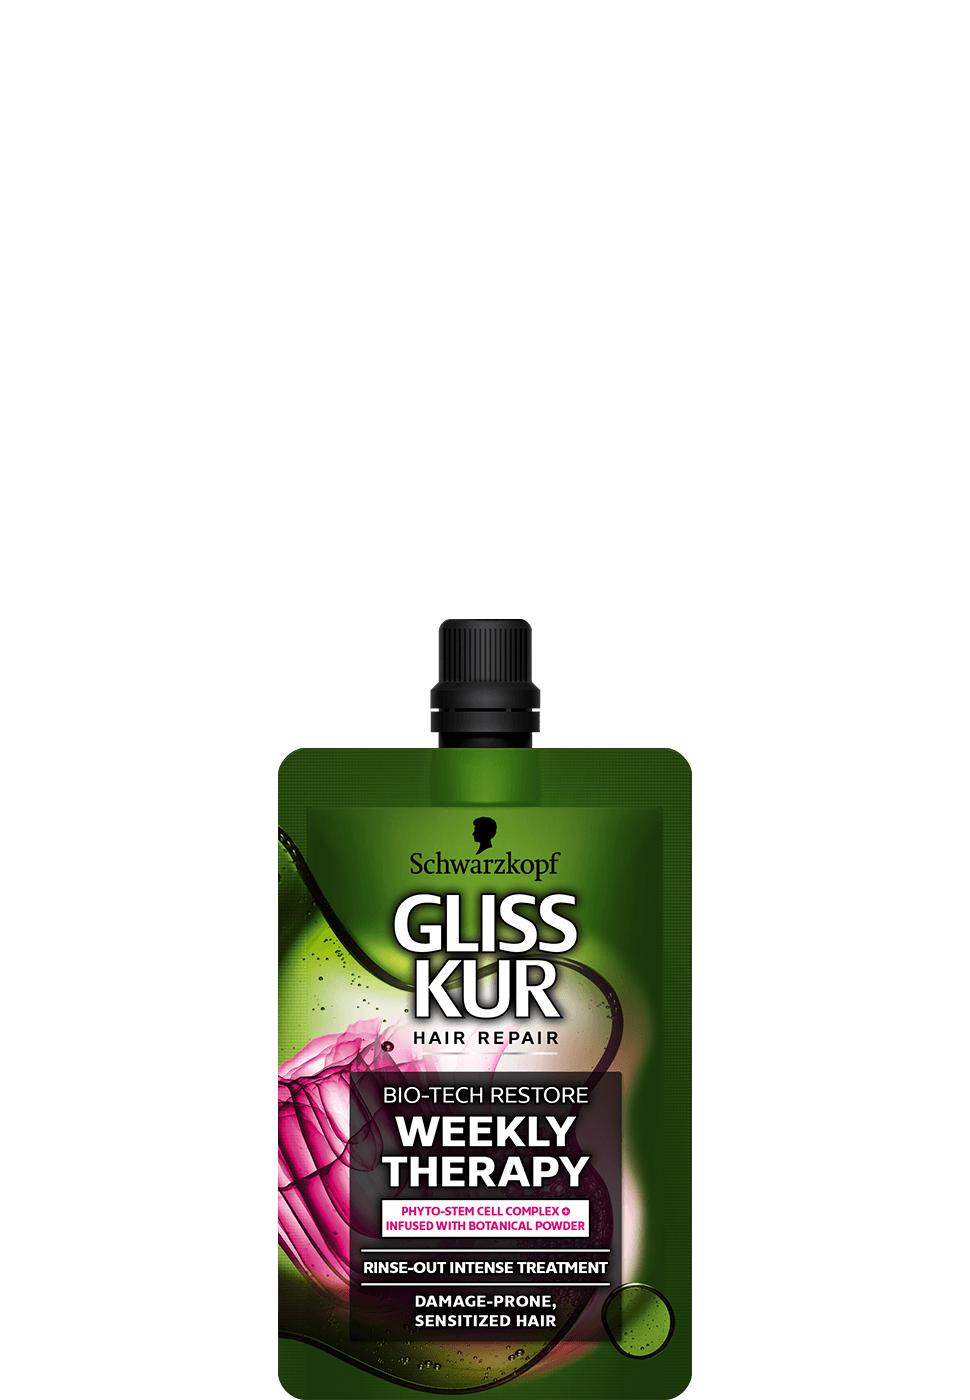 glisskur_com_bio_tech_weekly_therapy_970x1400